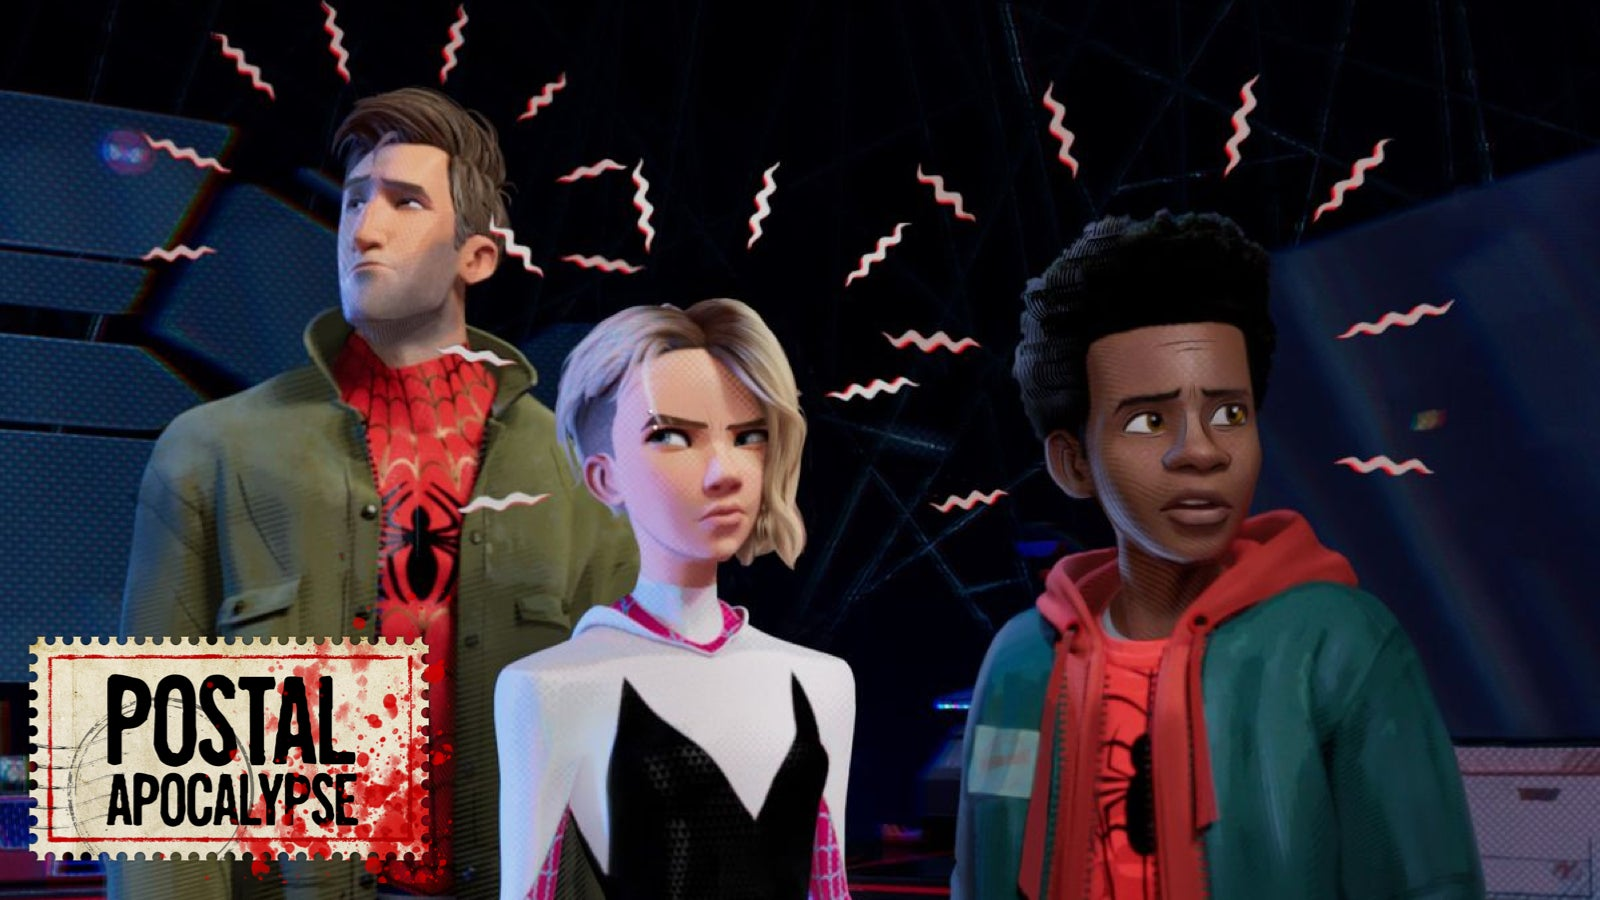 Postal Apocalypse: Could Into The Spider-Verse Lead To A Live-Action Spider-Man Multiverse?